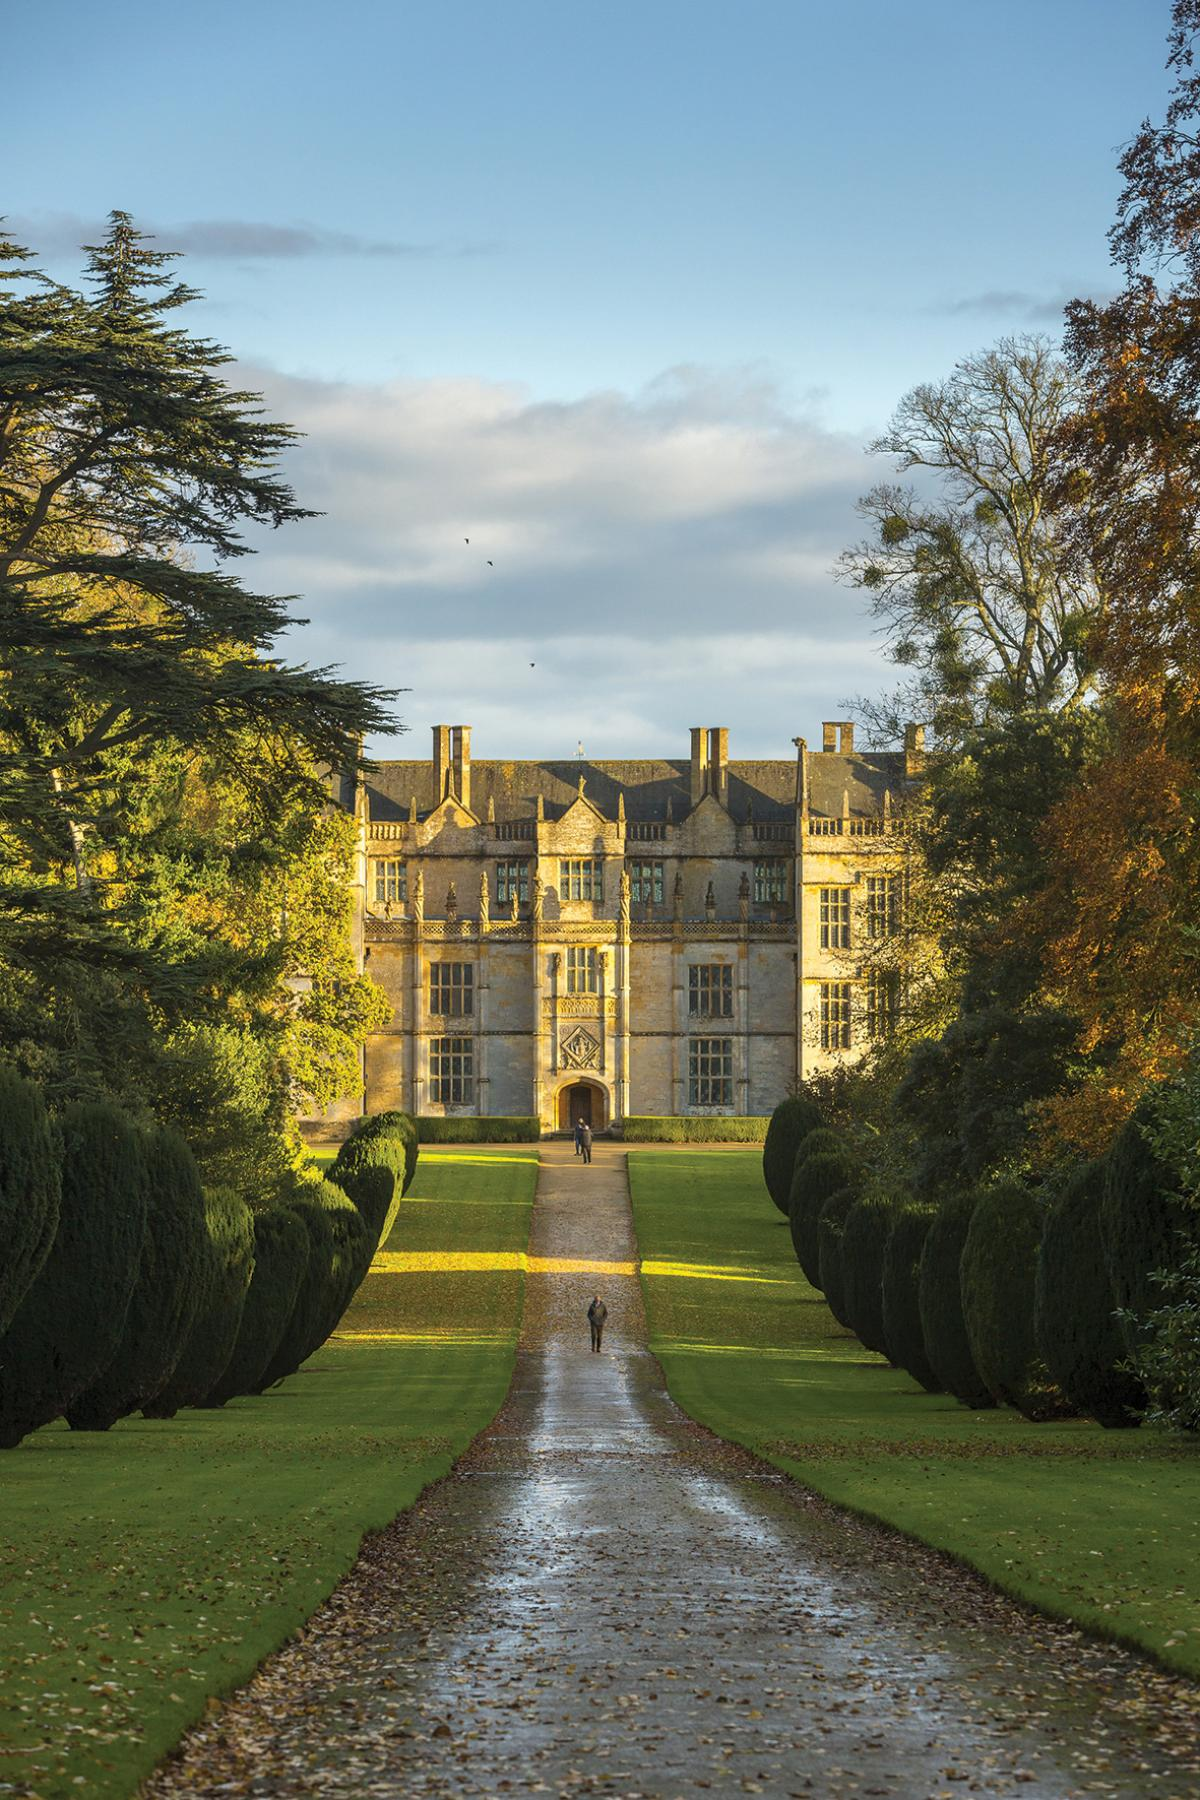 Images from Montacute House (NT)